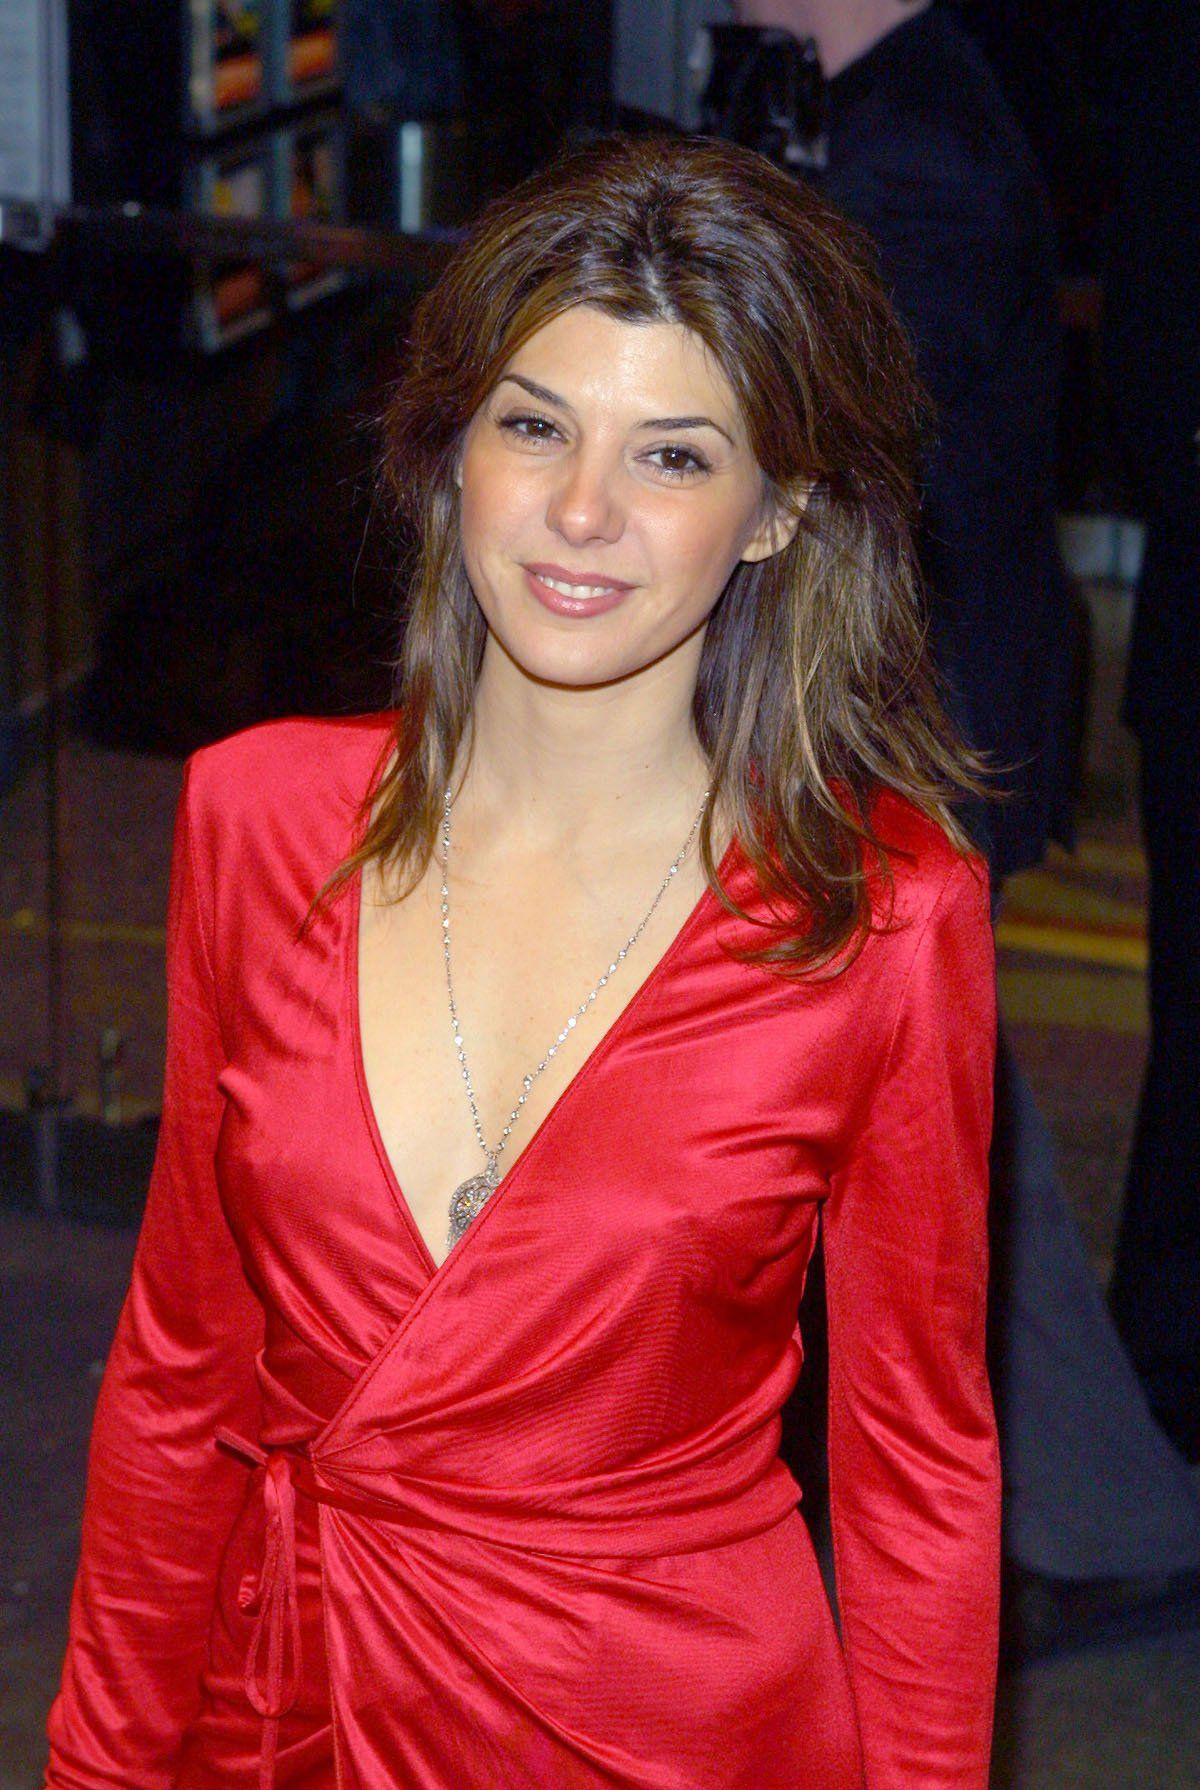 Marisa tomei hot attractively!